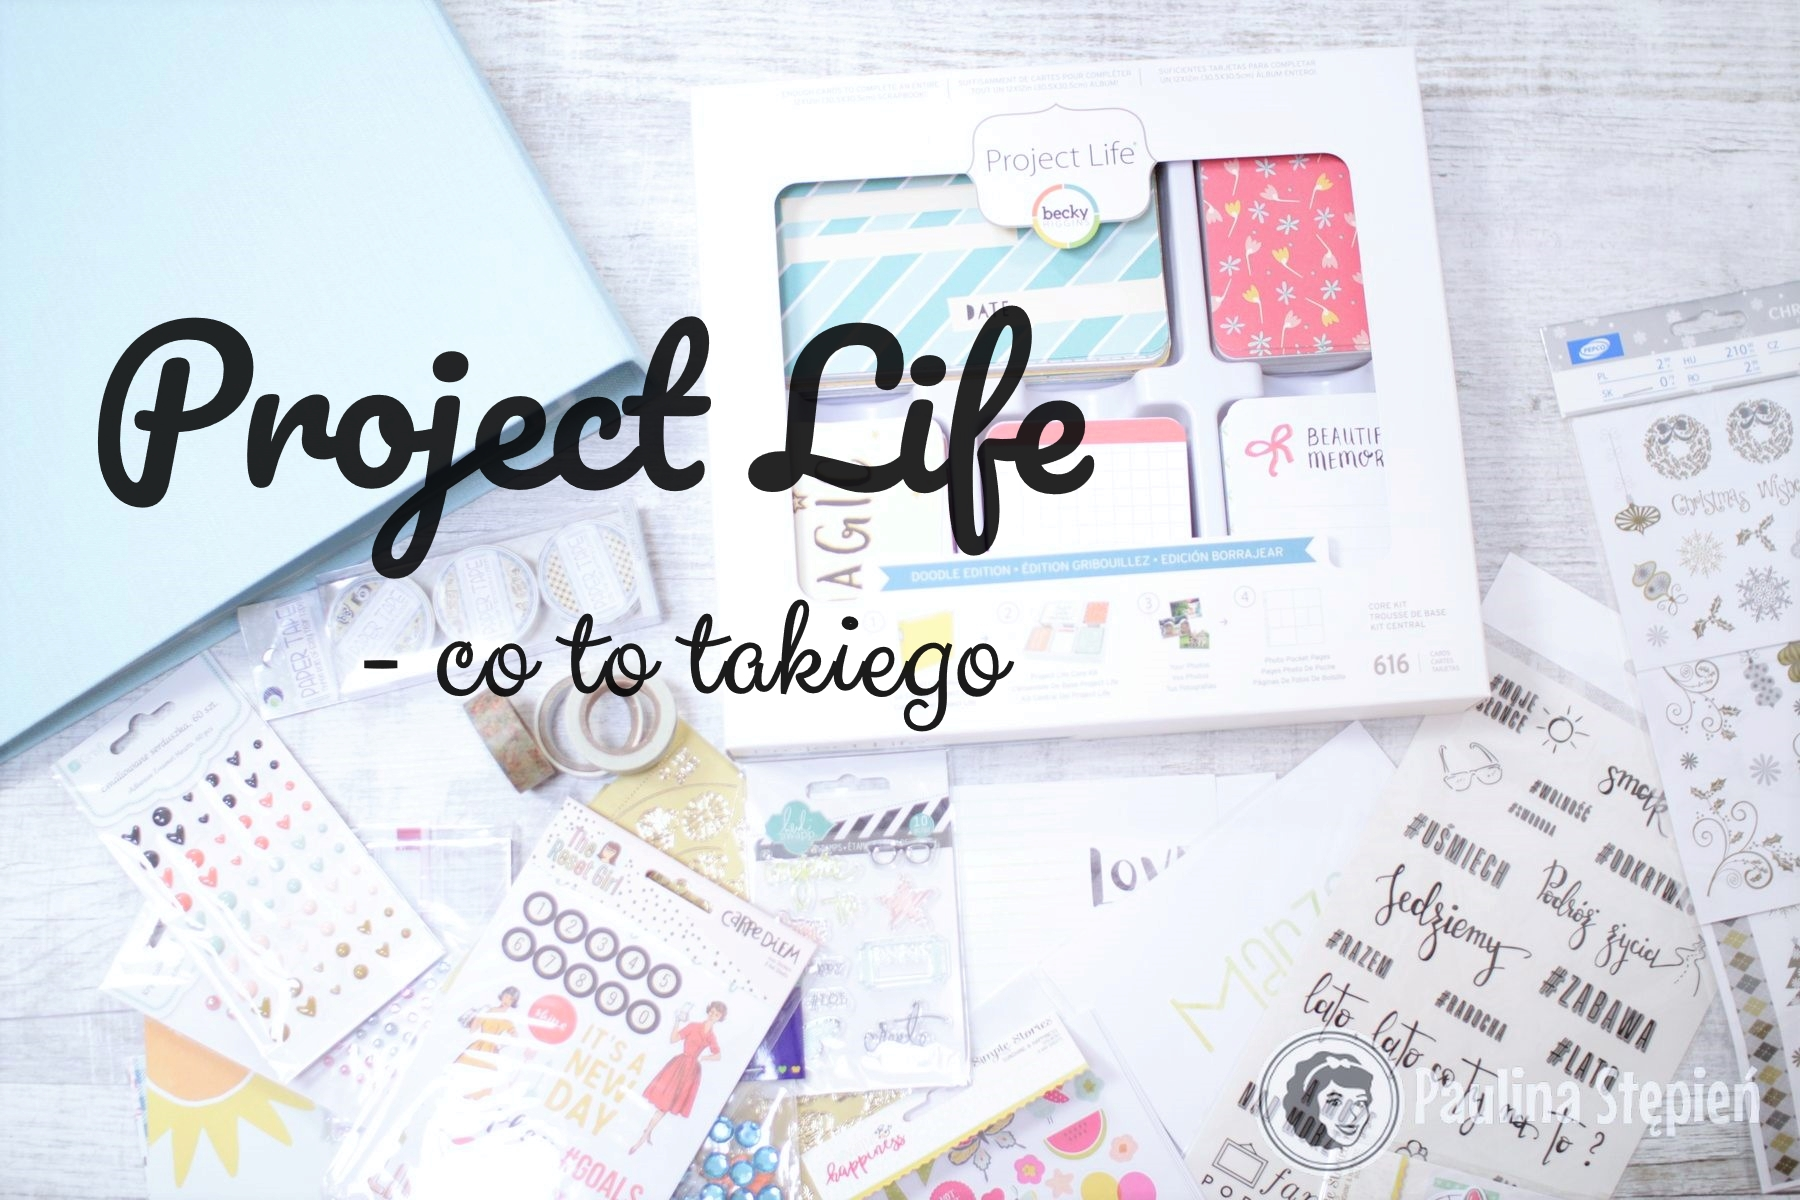 Project Life - co to takiego